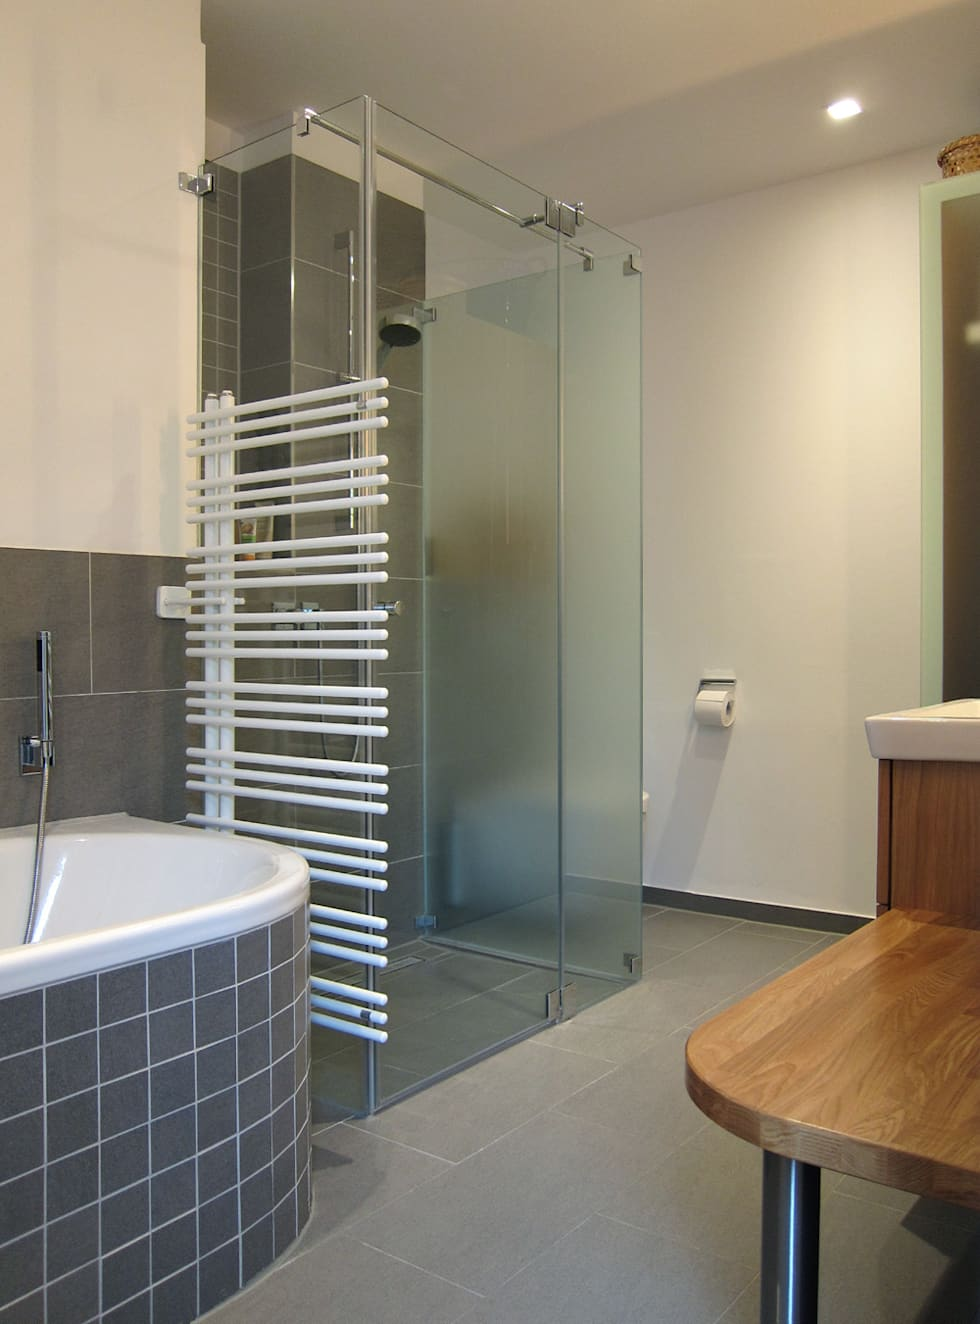 wohnideen interior design einrichtungsideen bilder homify. Black Bedroom Furniture Sets. Home Design Ideas